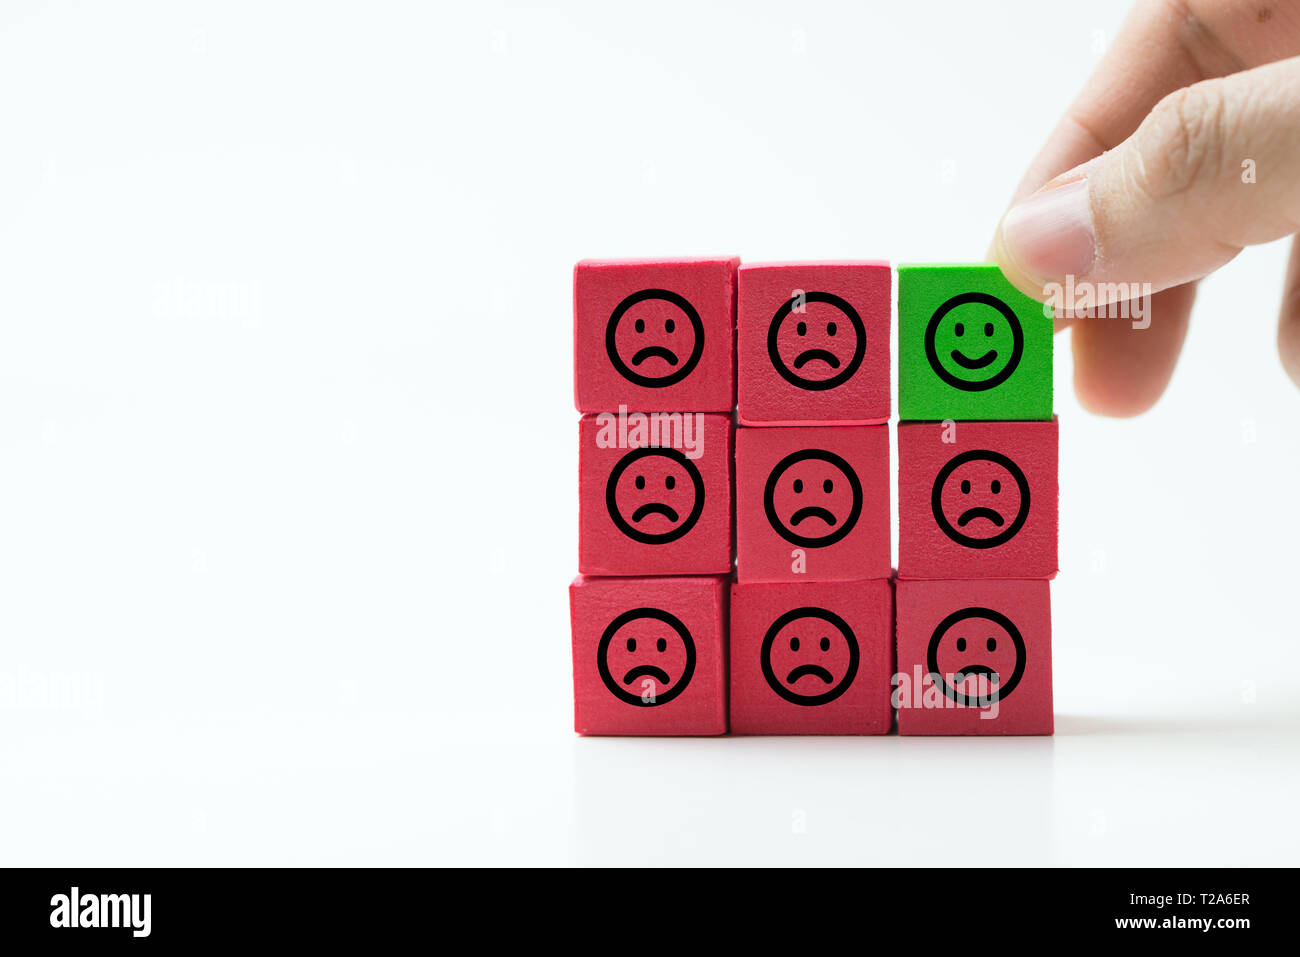 Unique, optimistic, happiness, difference concept using single happy face among many sad faces. - Stock Image